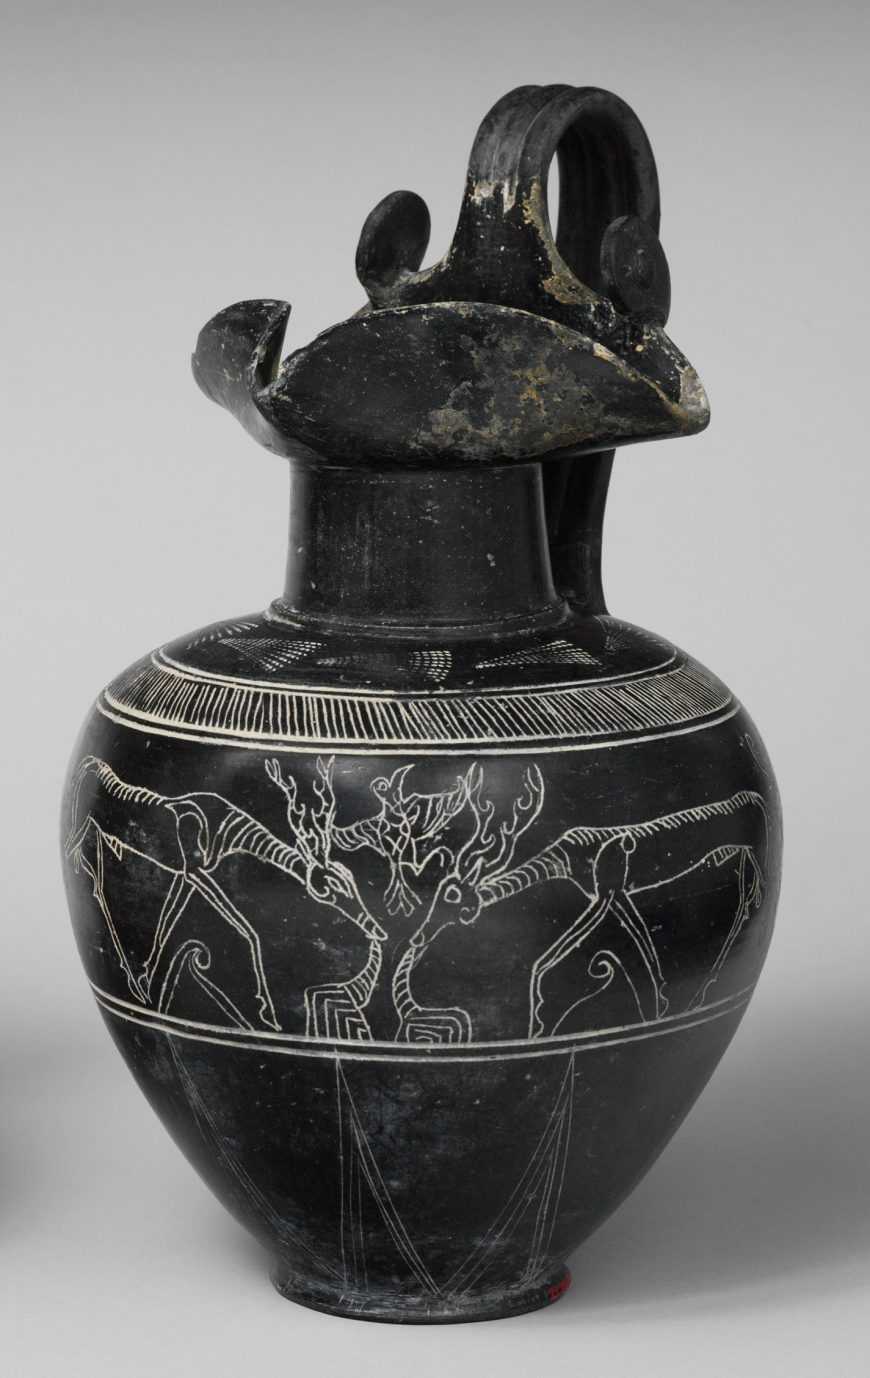 Terracotta trefoil oinochoe (jug), c. 625-600 B.C.E., Etruscan, terracotta, bucchero sottile, 11 3/16 in high (The Metropolitan Museum of Art)